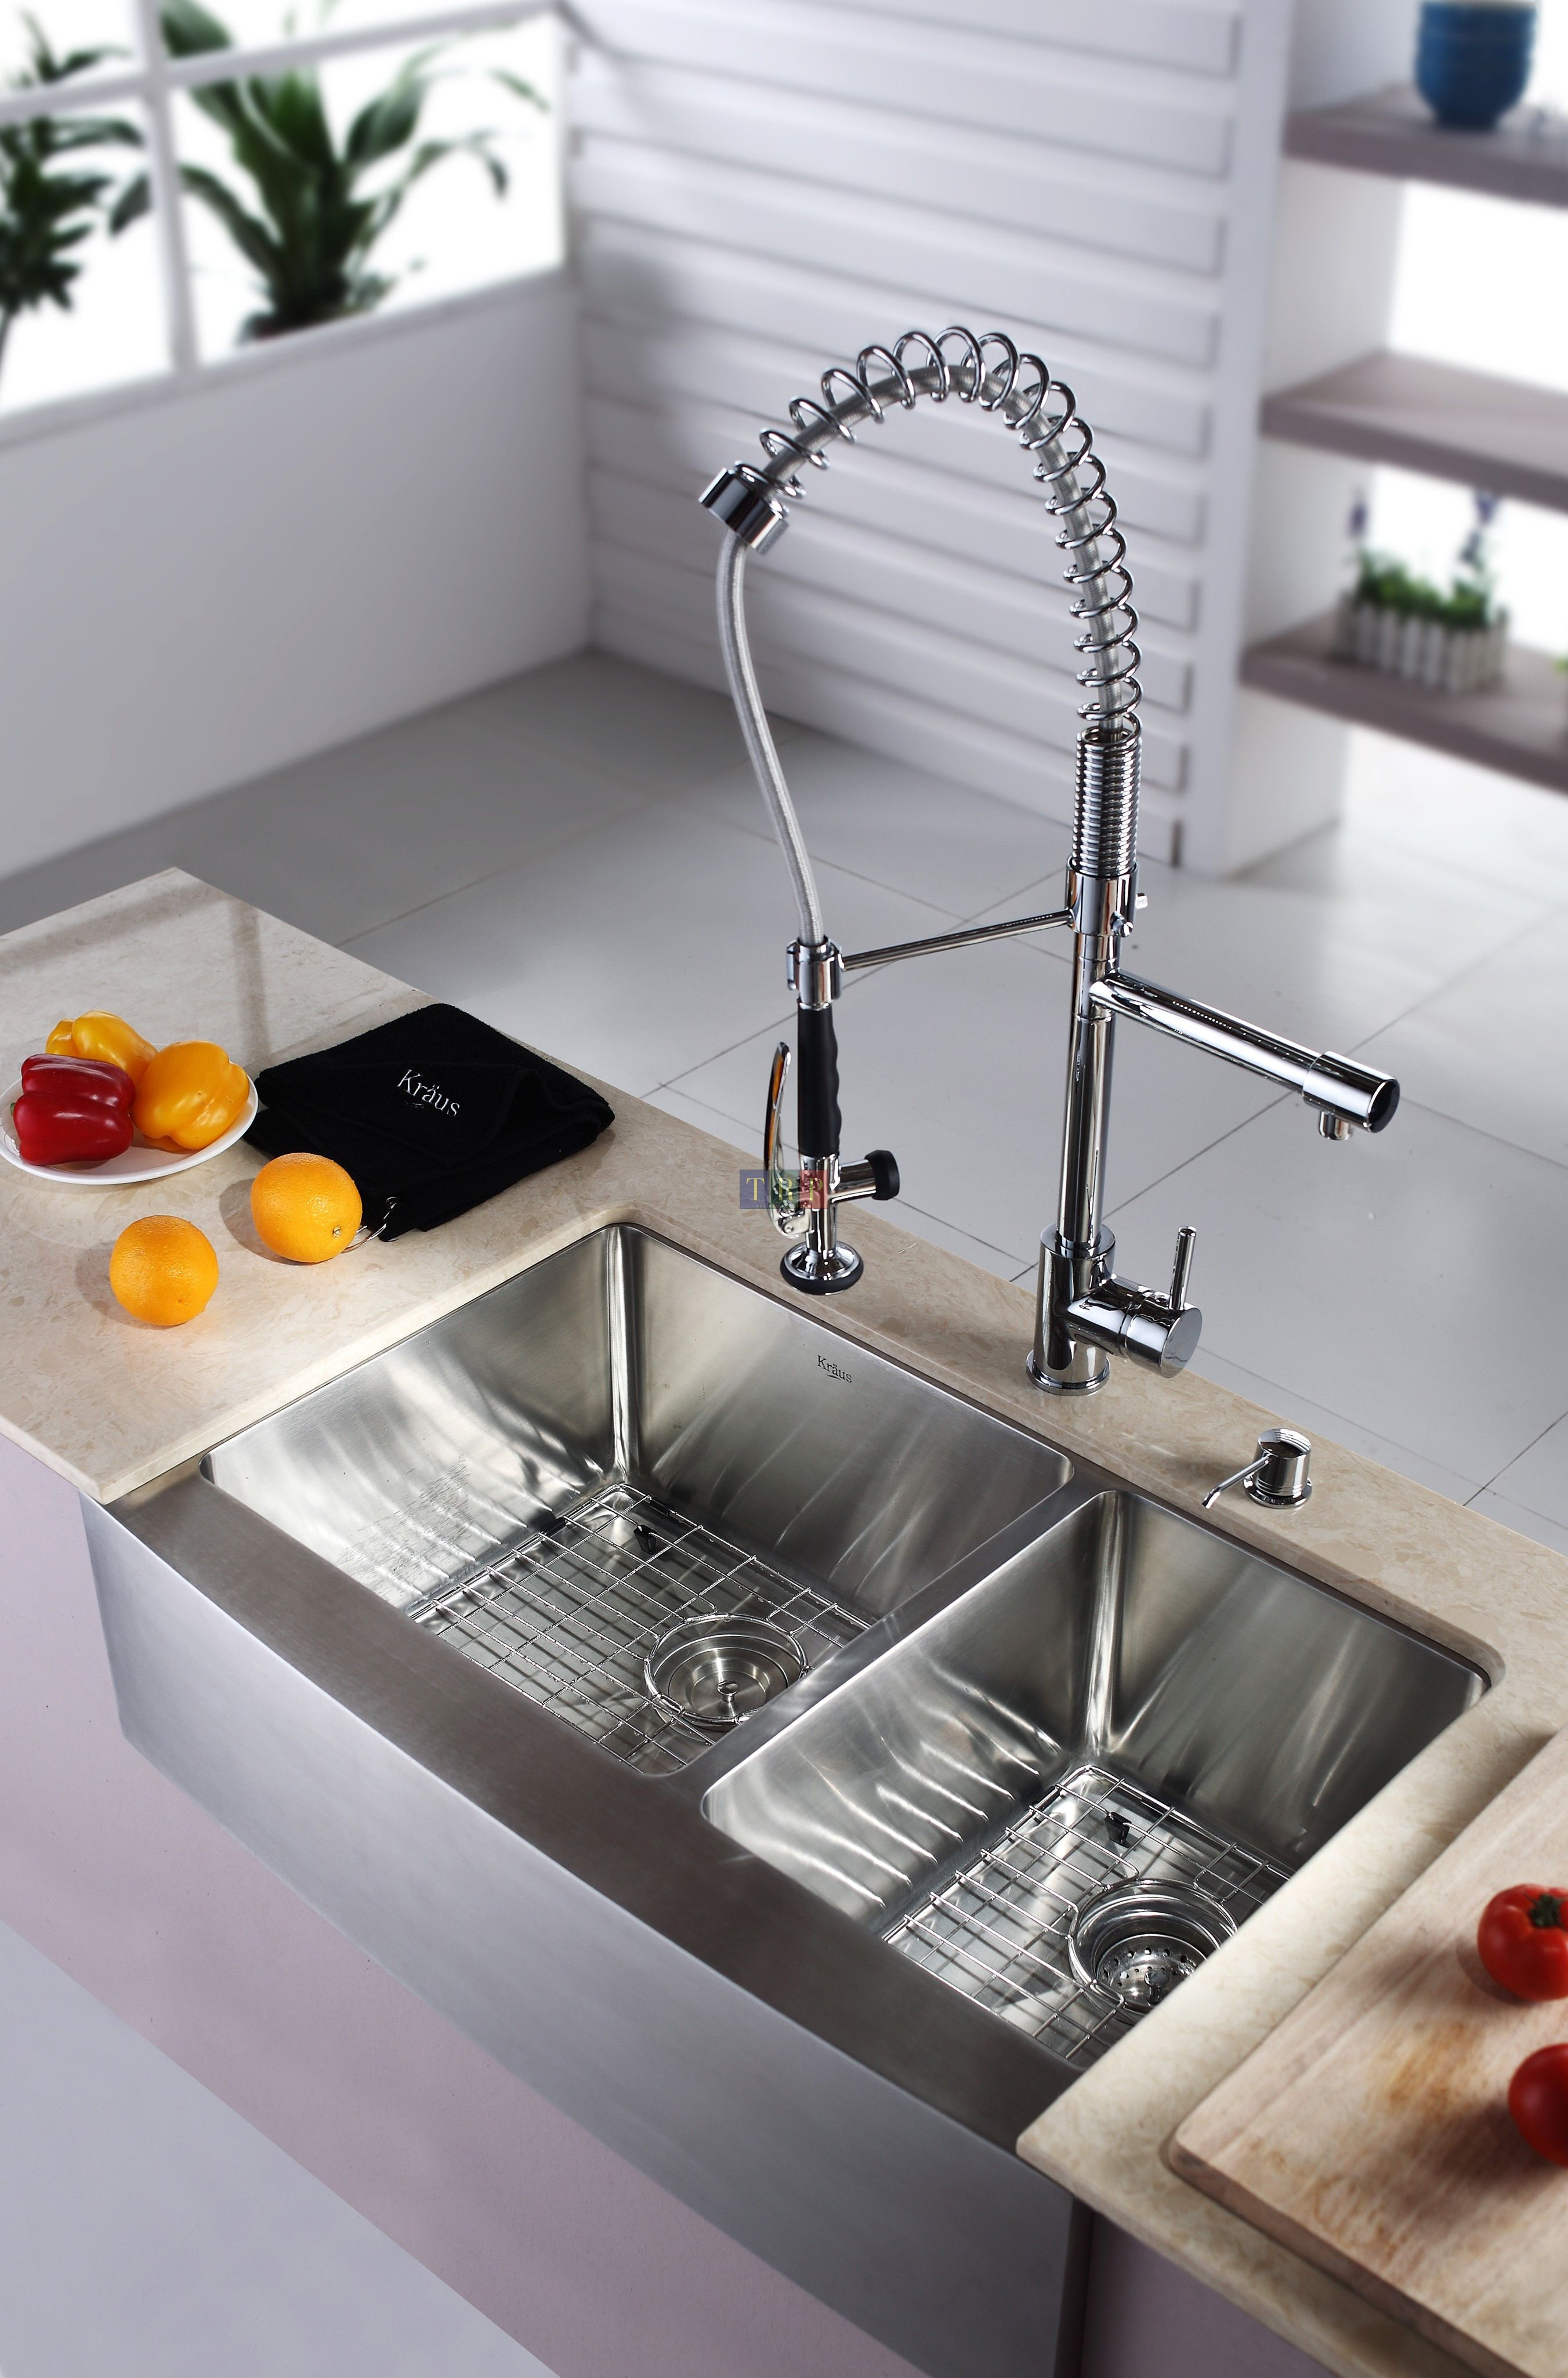 Awesome Kitchen Sink Ideas Modern Cool And Corner Kitchen Sink Design In 2021 Kitchen Sink Design Kitchen Remodel Kitchen Sink